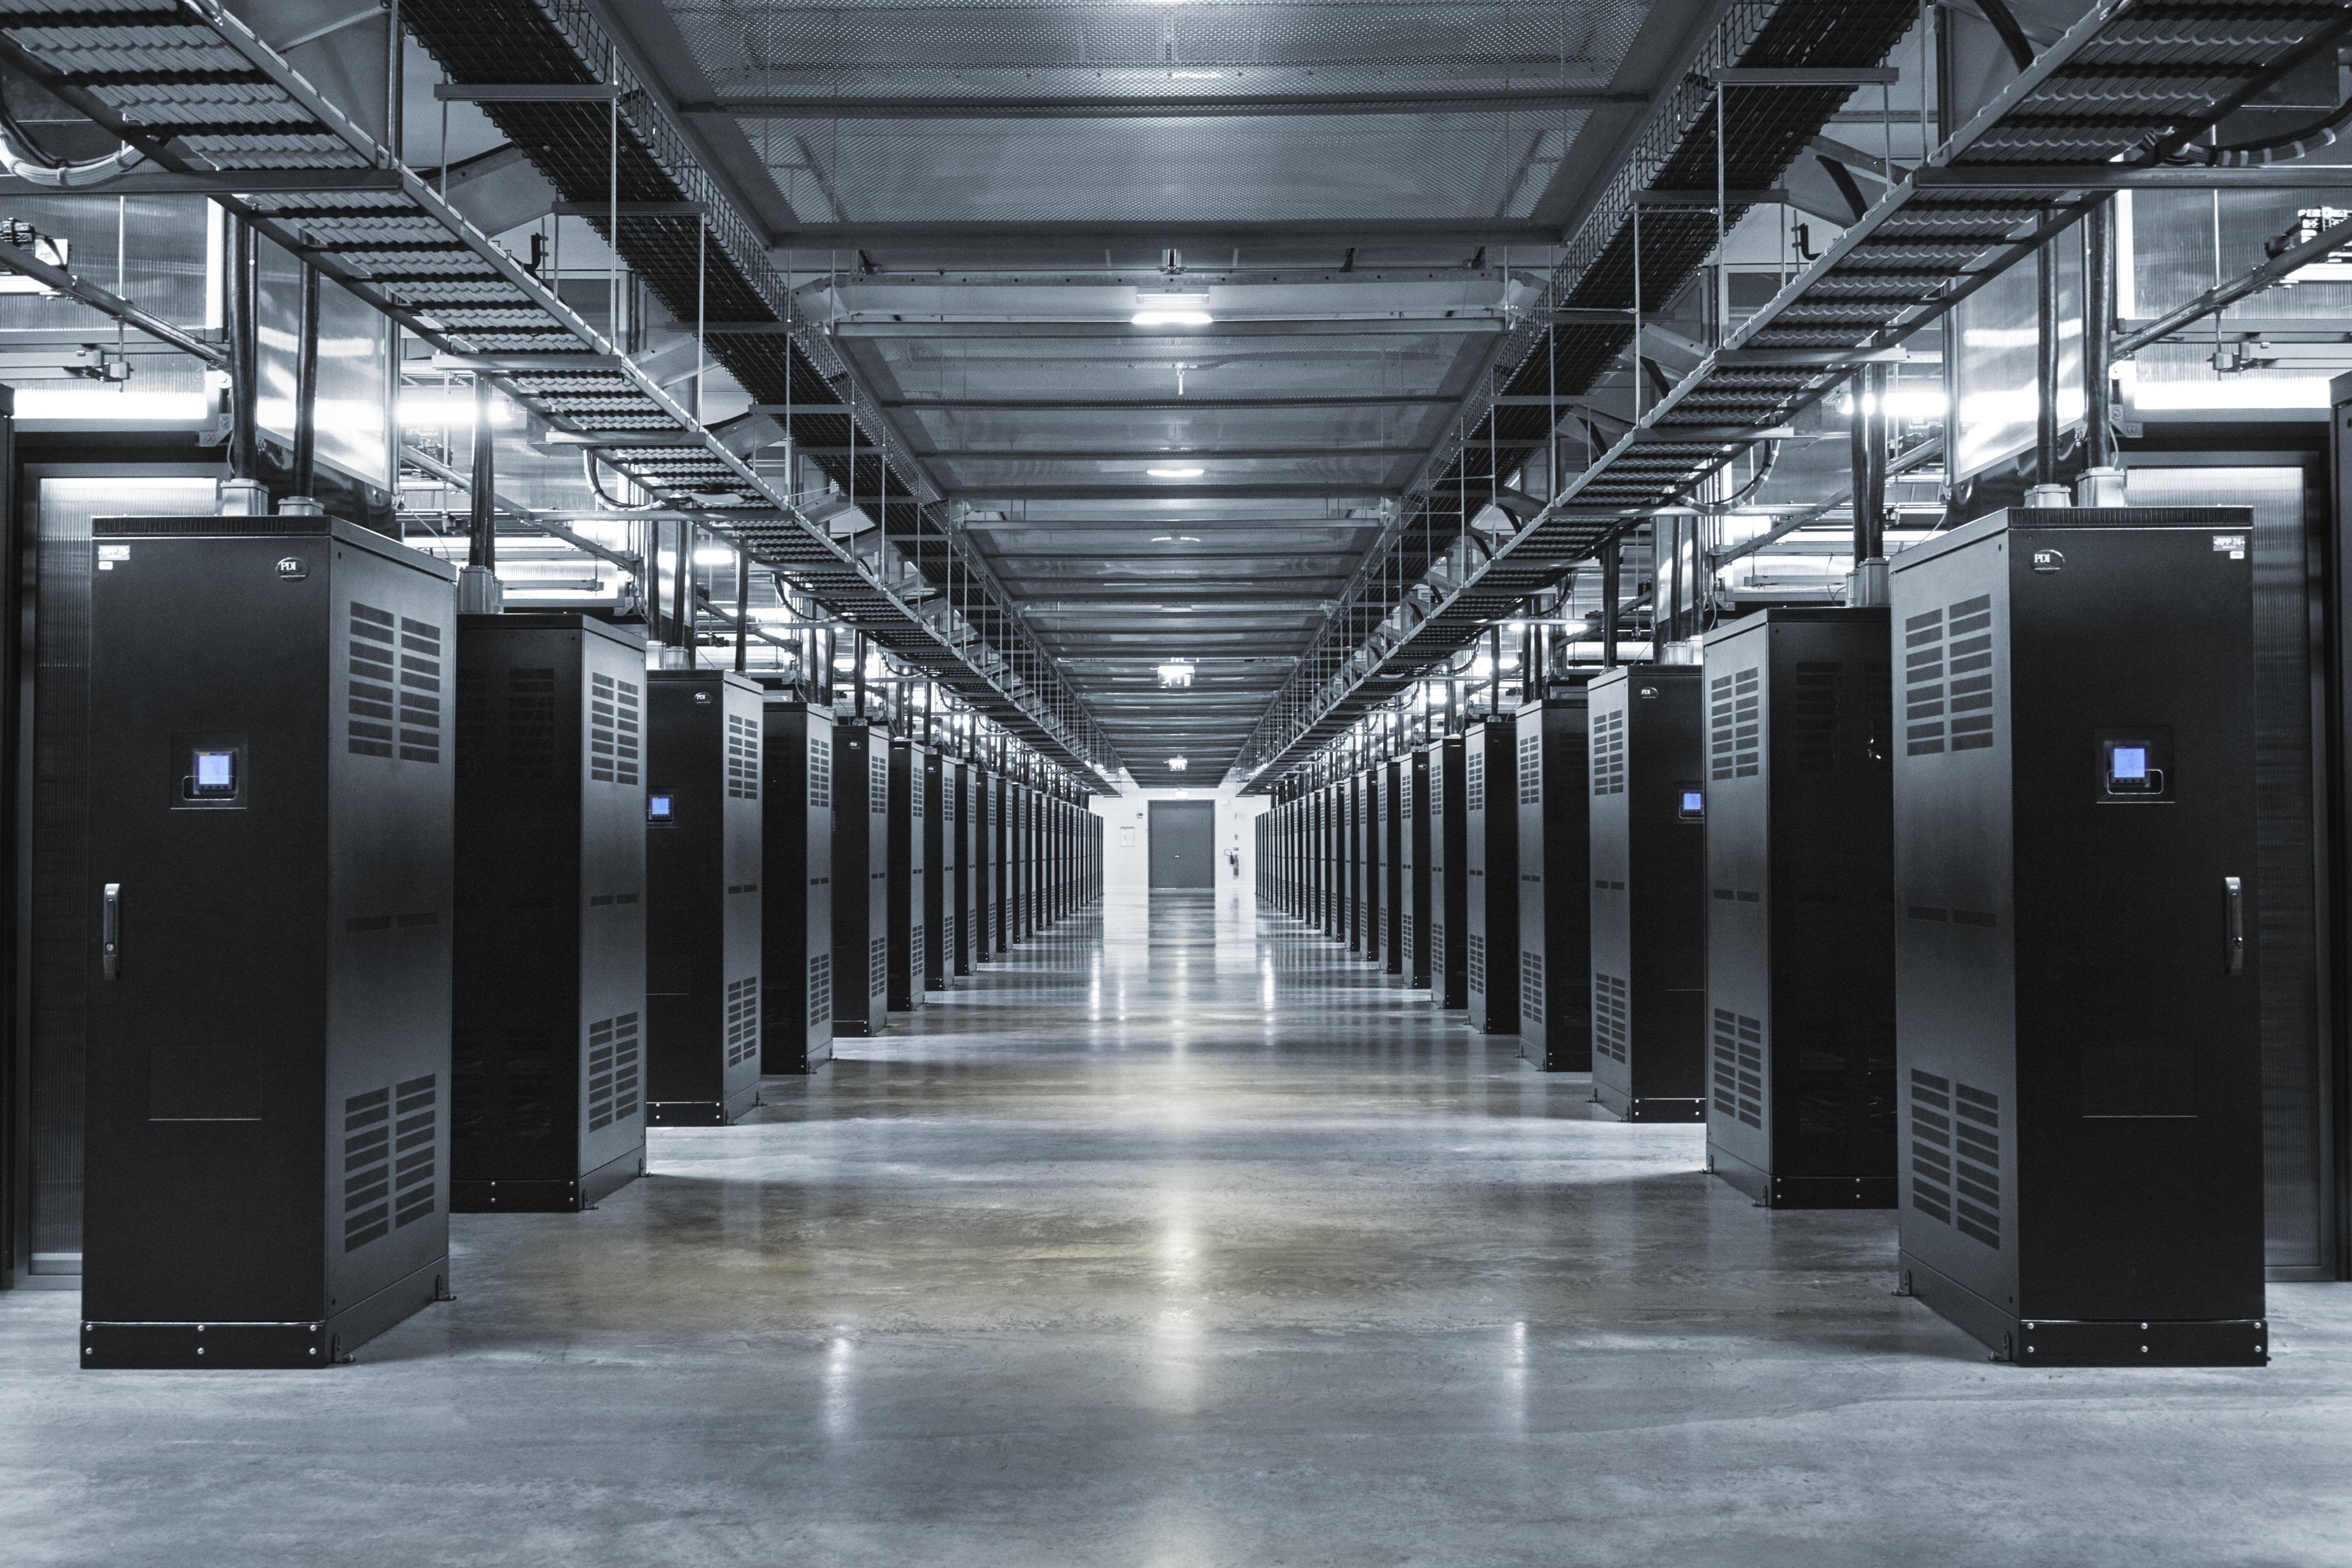 The data center houses tens of thousands of servers. The data halls are frequently empty because only one technician is needed for every 25,000                                servers, Facebook says.